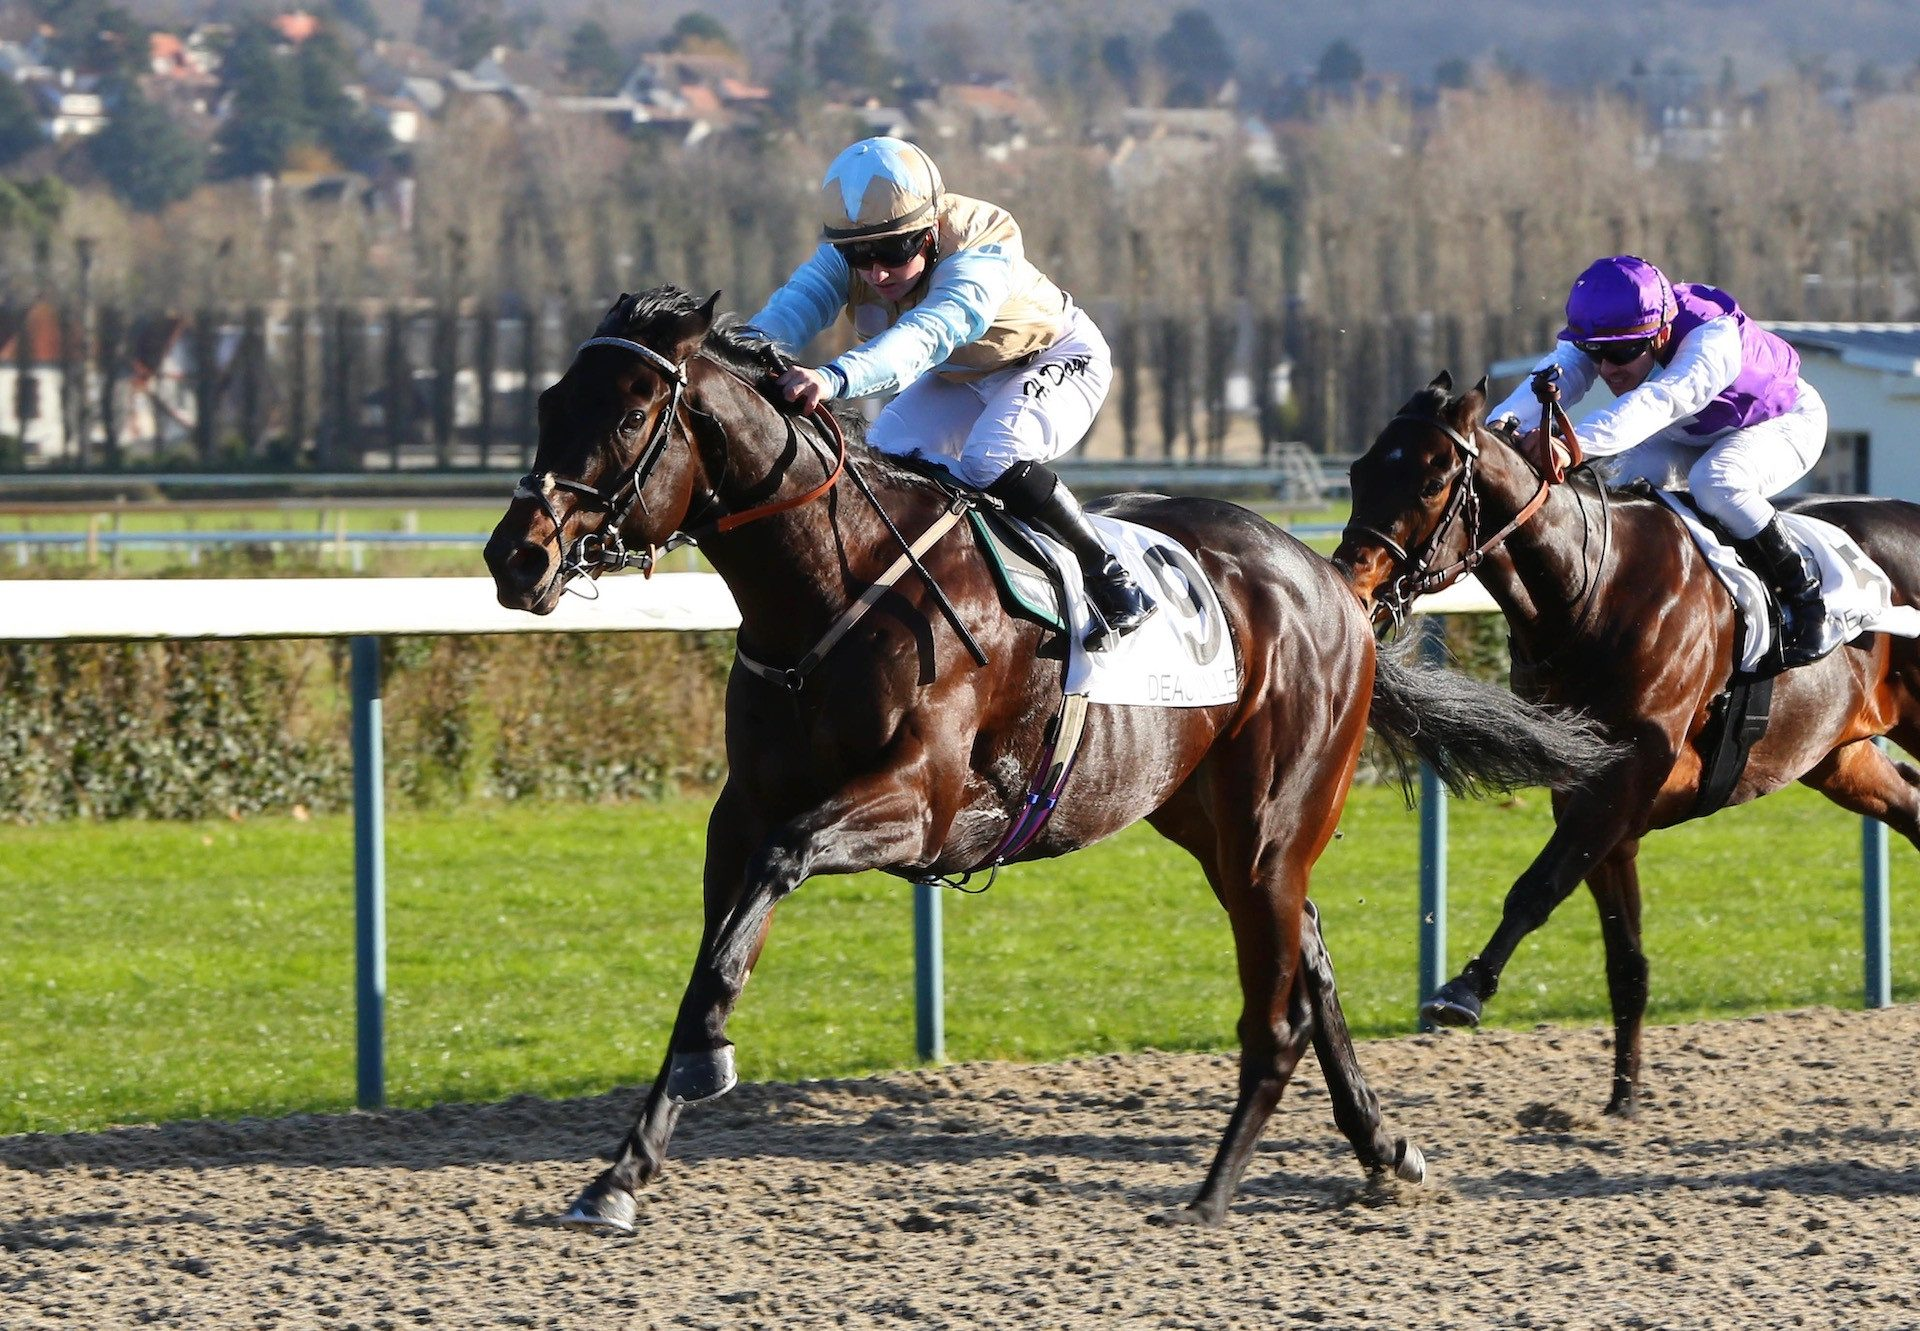 Colonel Faulkner (Wootton Bassett) Wins His Maiden At Deauville